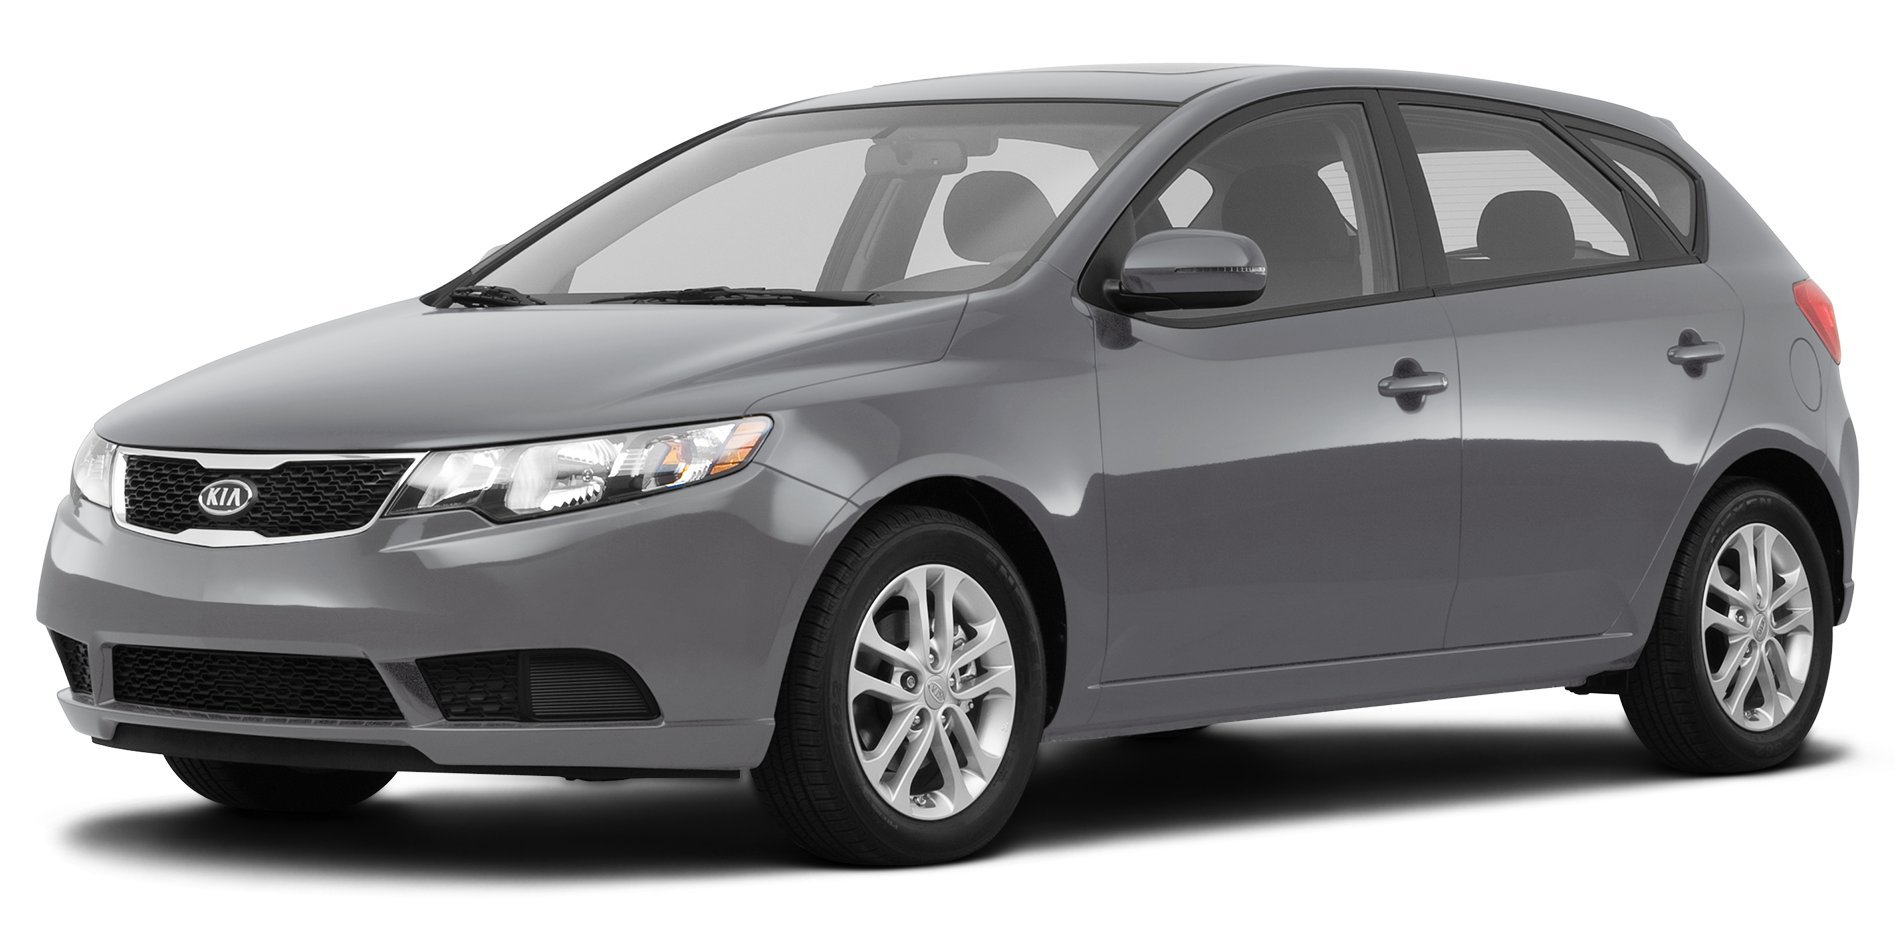 2011 Kia Forte Reviews Images And Specs Vehicles Wheels Ex 5 Door Hatchback Automatic Transmission